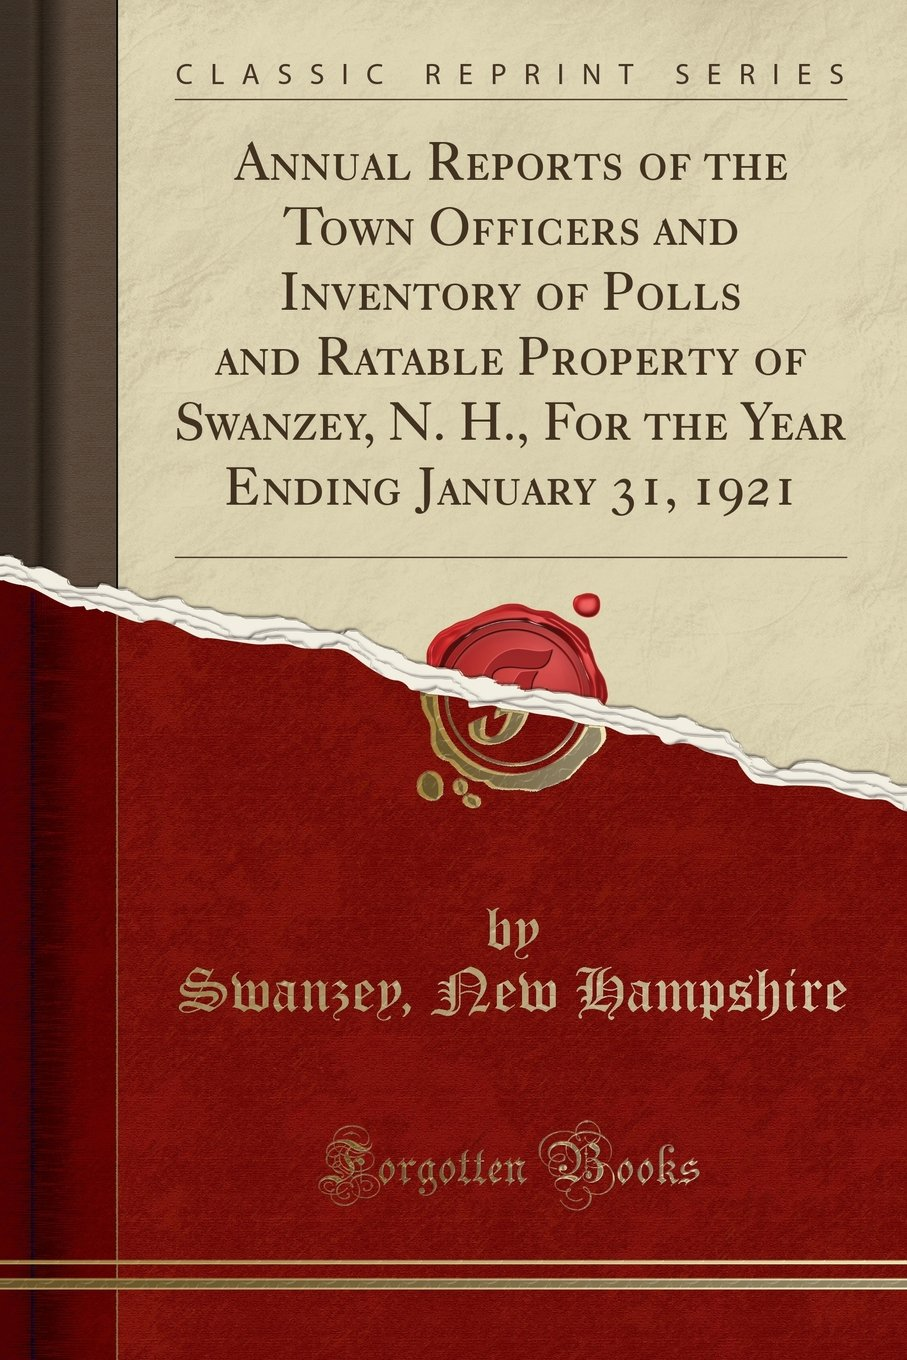 Download Annual Reports of the Town Officers and Inventory of Polls and Ratable Property of Swanzey, N. H, For the Year Ending January 31, 1921 (Classic Reprint) PDF